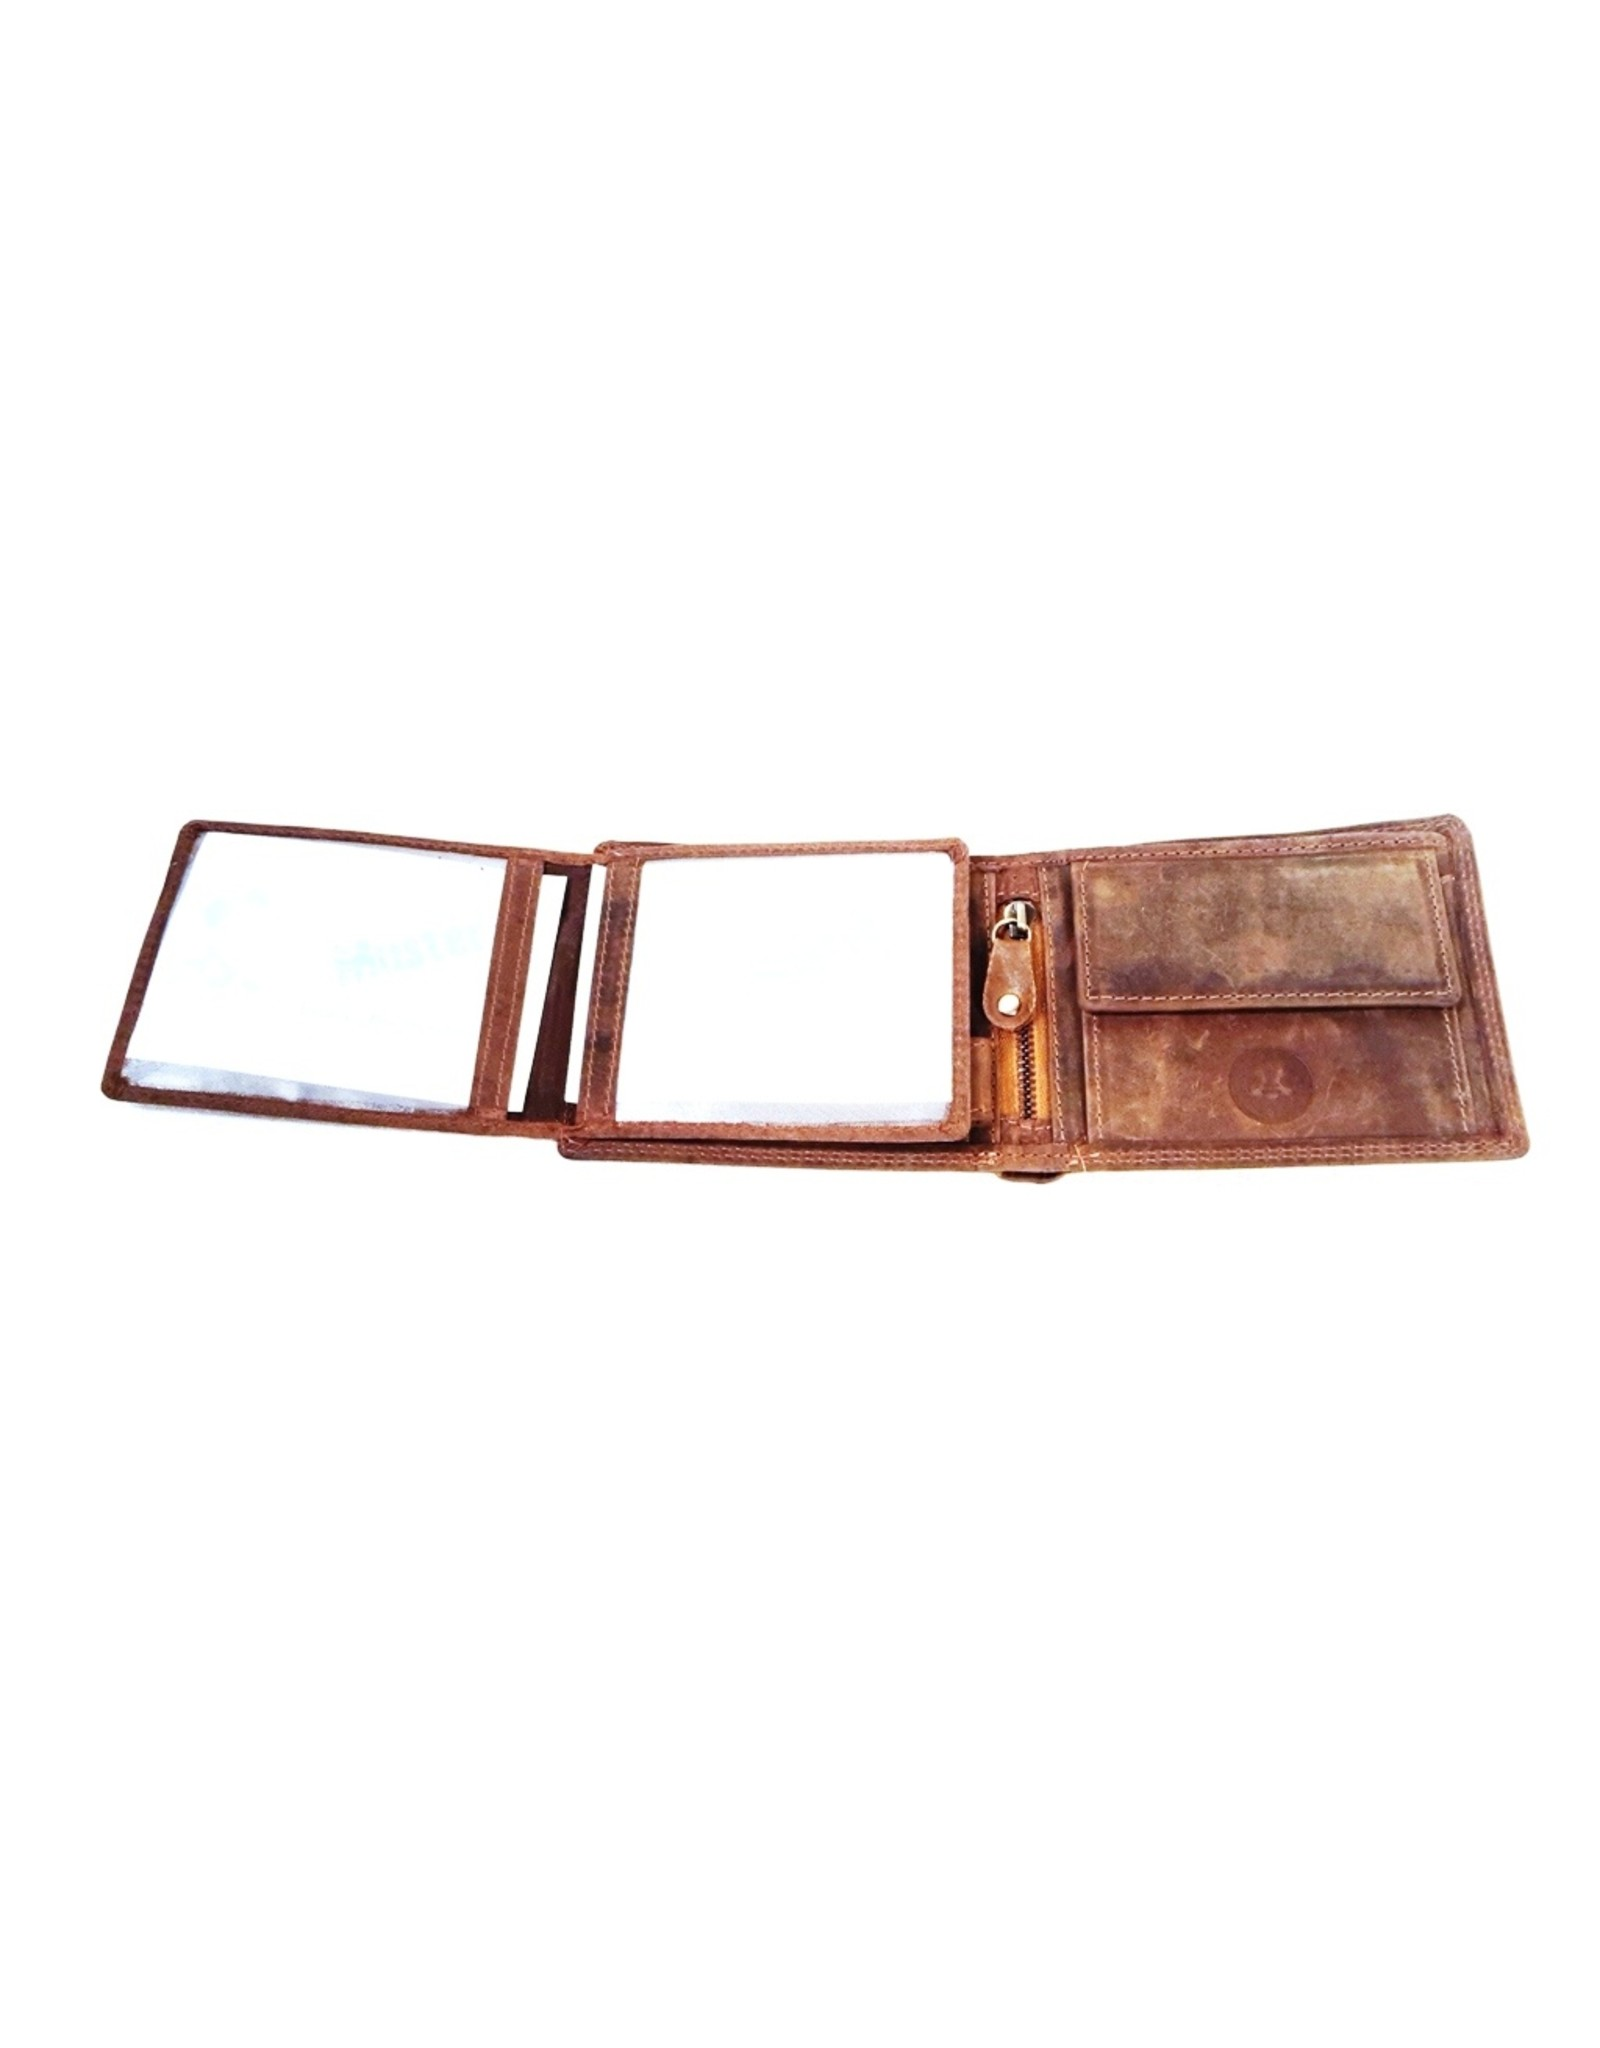 Stern Leather Statement Wallets - Leather wallet Skull with Marines Beret and Wings